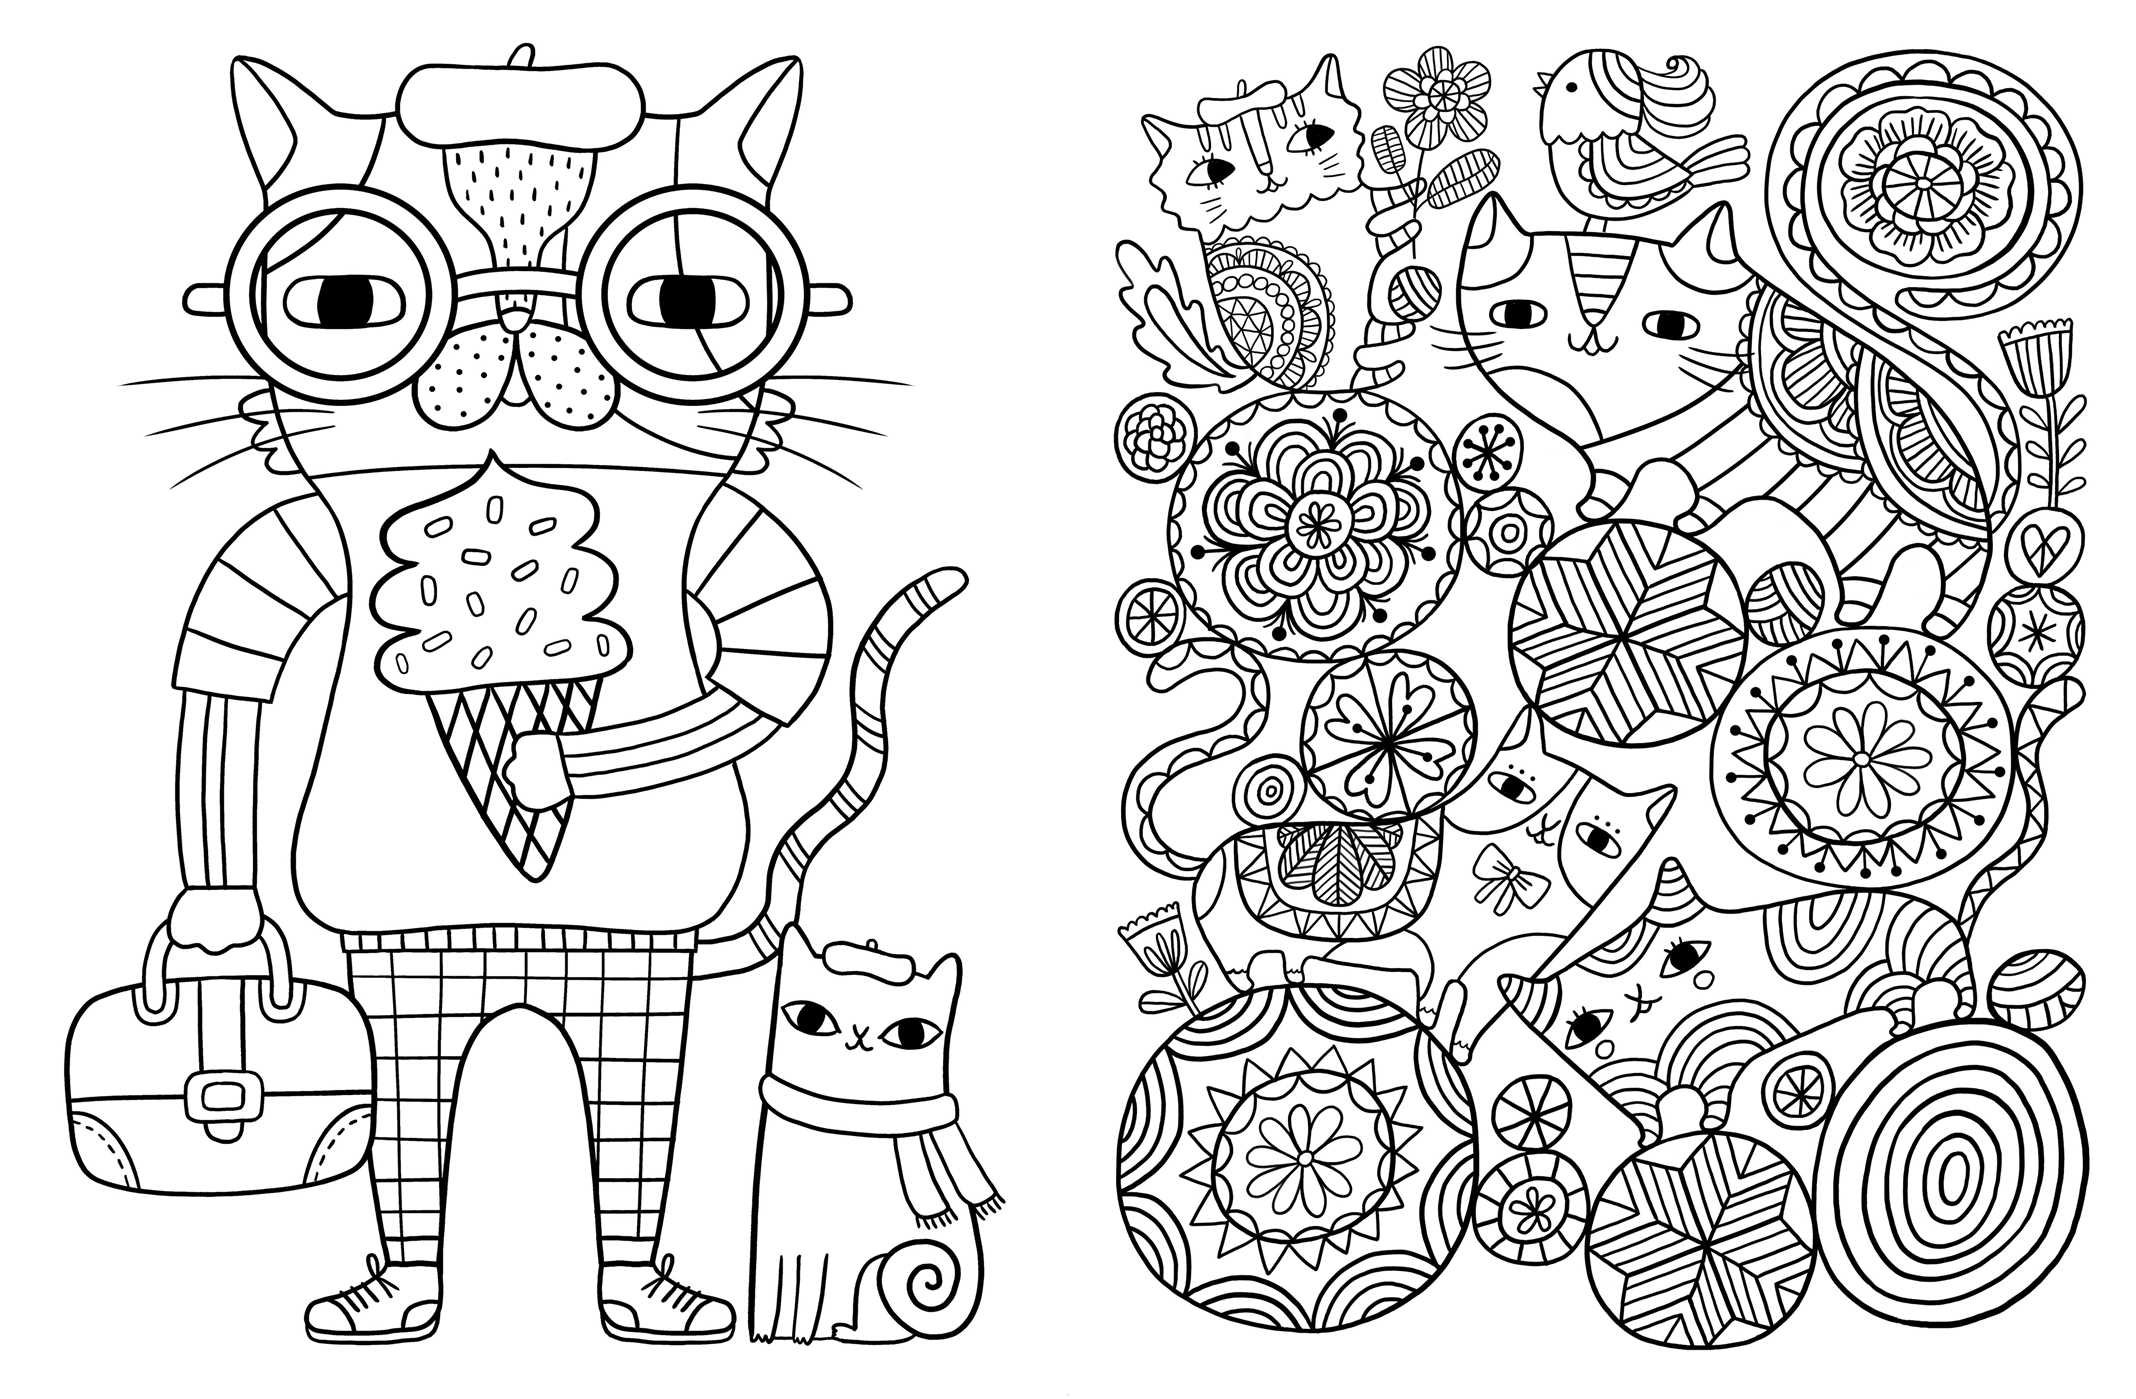 Detailed Cat Coloring Pages At Getdrawings Com Free For Personal